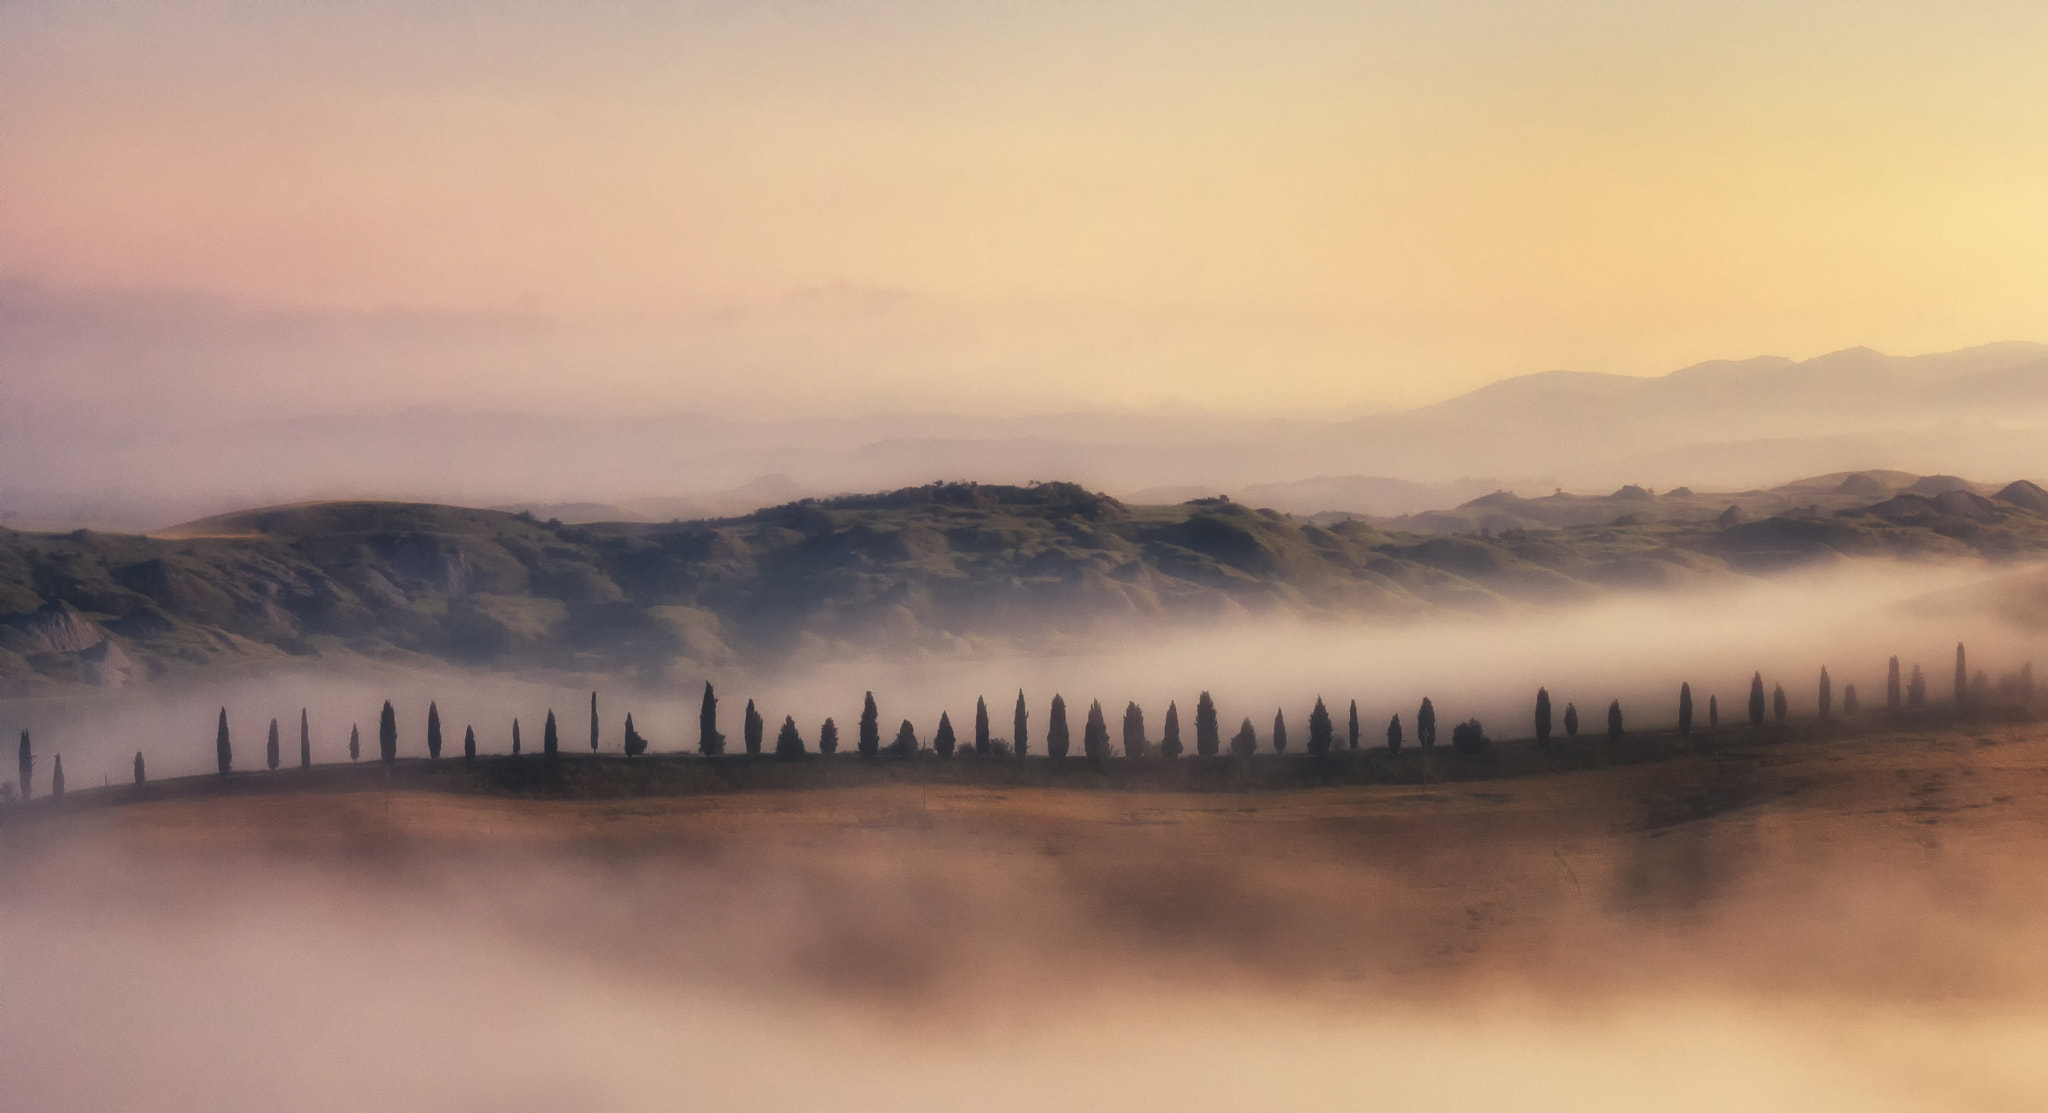 Photograph The foggy line by Antonio  longobardi on 500px